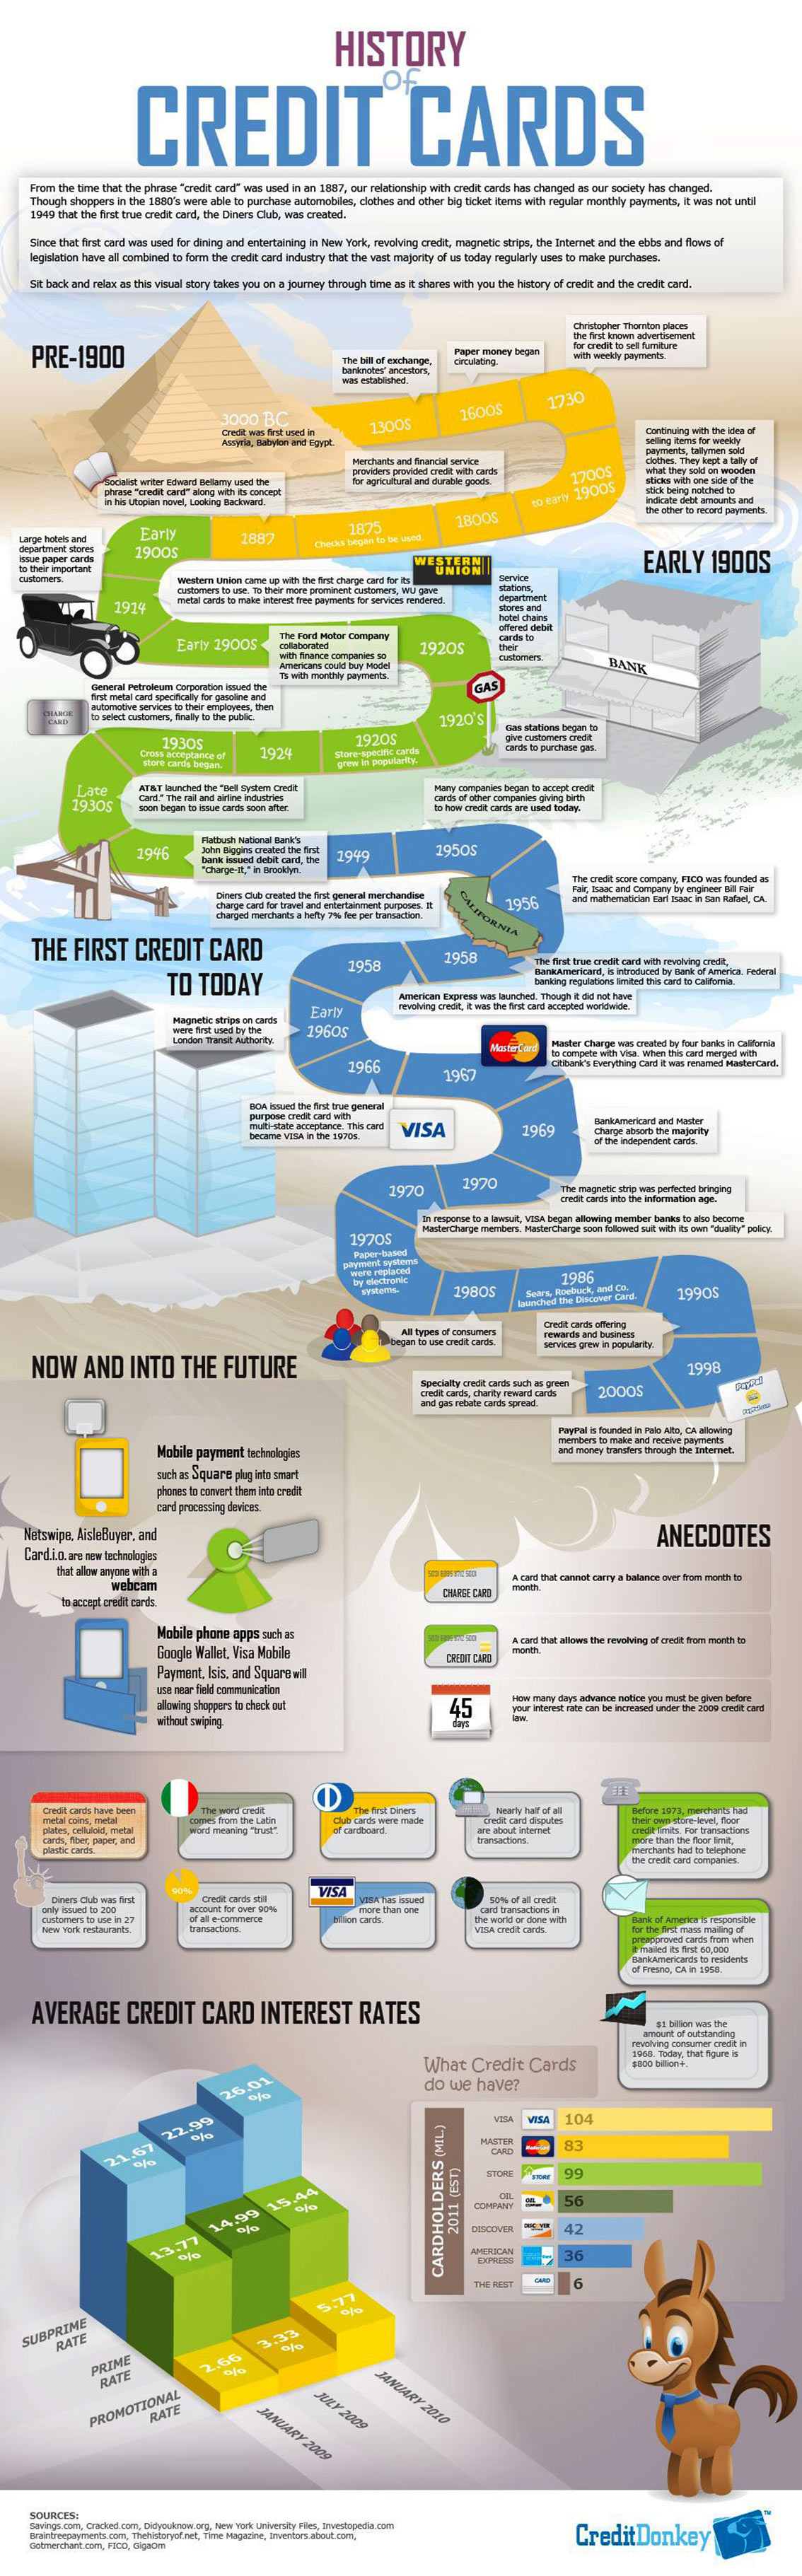 History of Credit Cards Finance Infographic